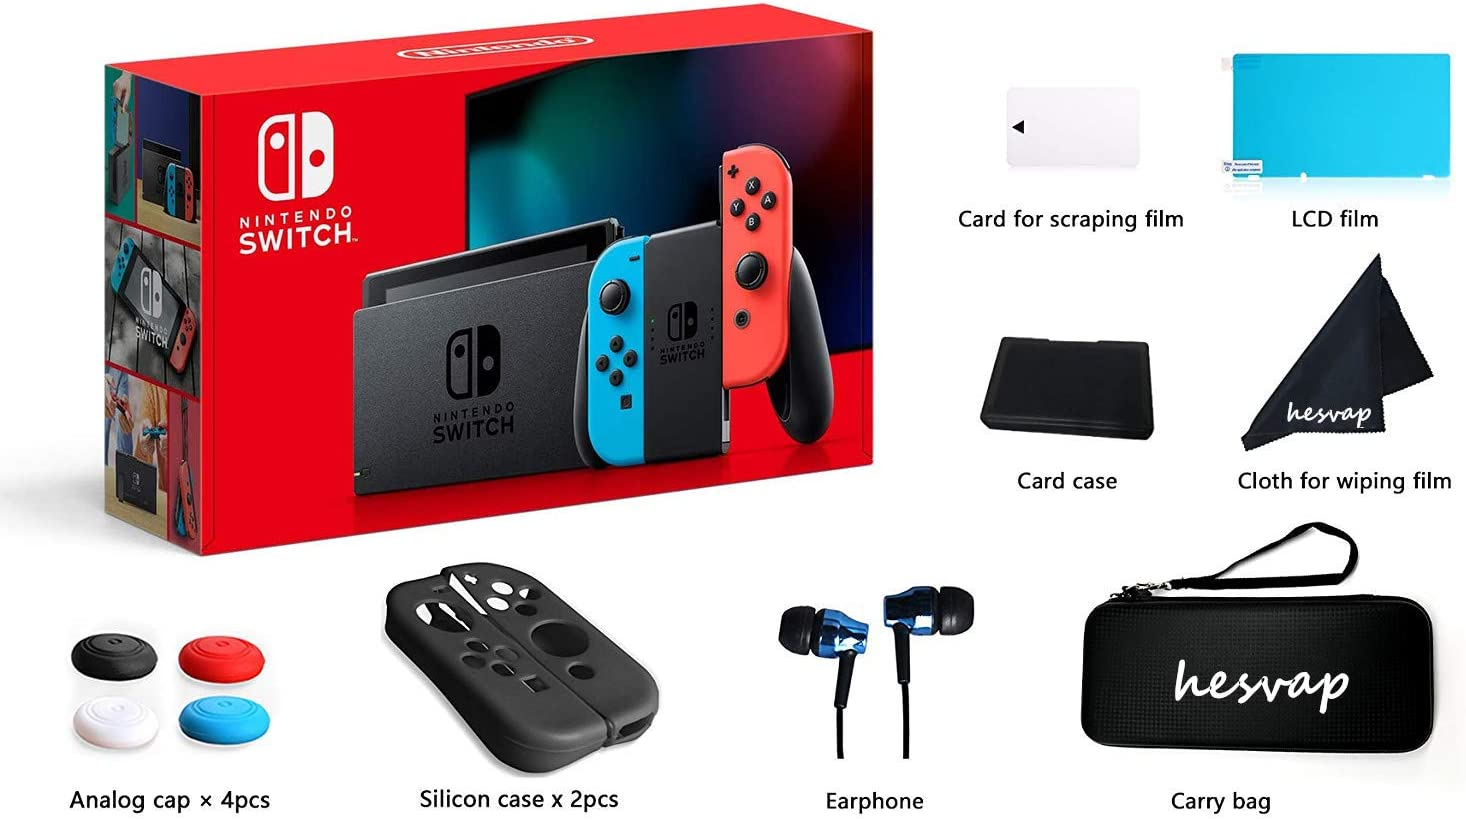 2020 Nintendo Switch with Neon Blue and Red Controllers w/ 69 Value HESVAP 13in1 Supper Kit Case (Earphone, LCD Film, Card Case, Silicon Case x 2pcs, Carry Bag, Wiping Cloth etc.)